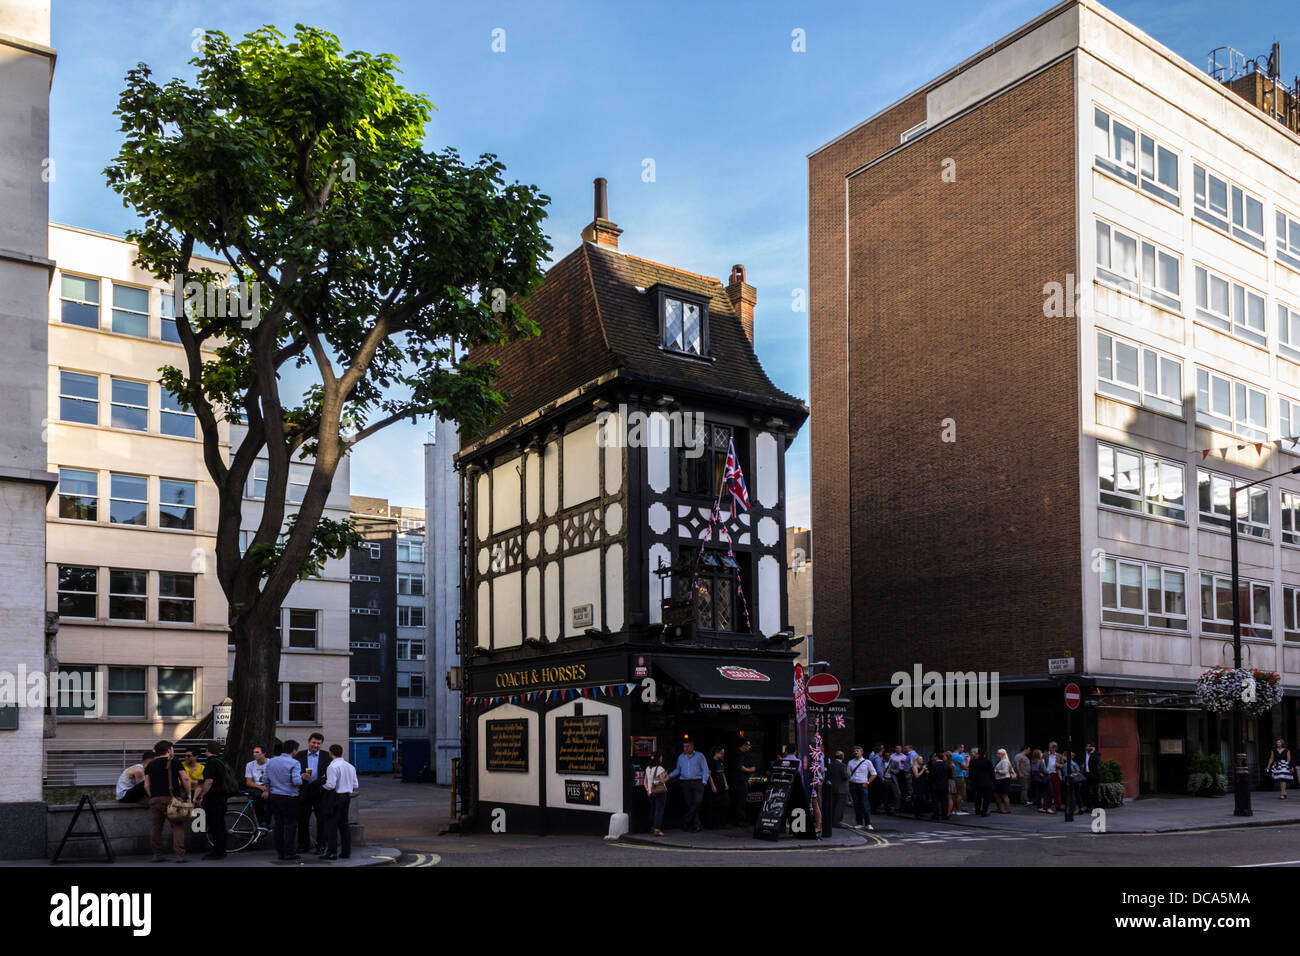 Modern Architecture Uk the coach & horses pub in mayfair, london, uk. the traditional